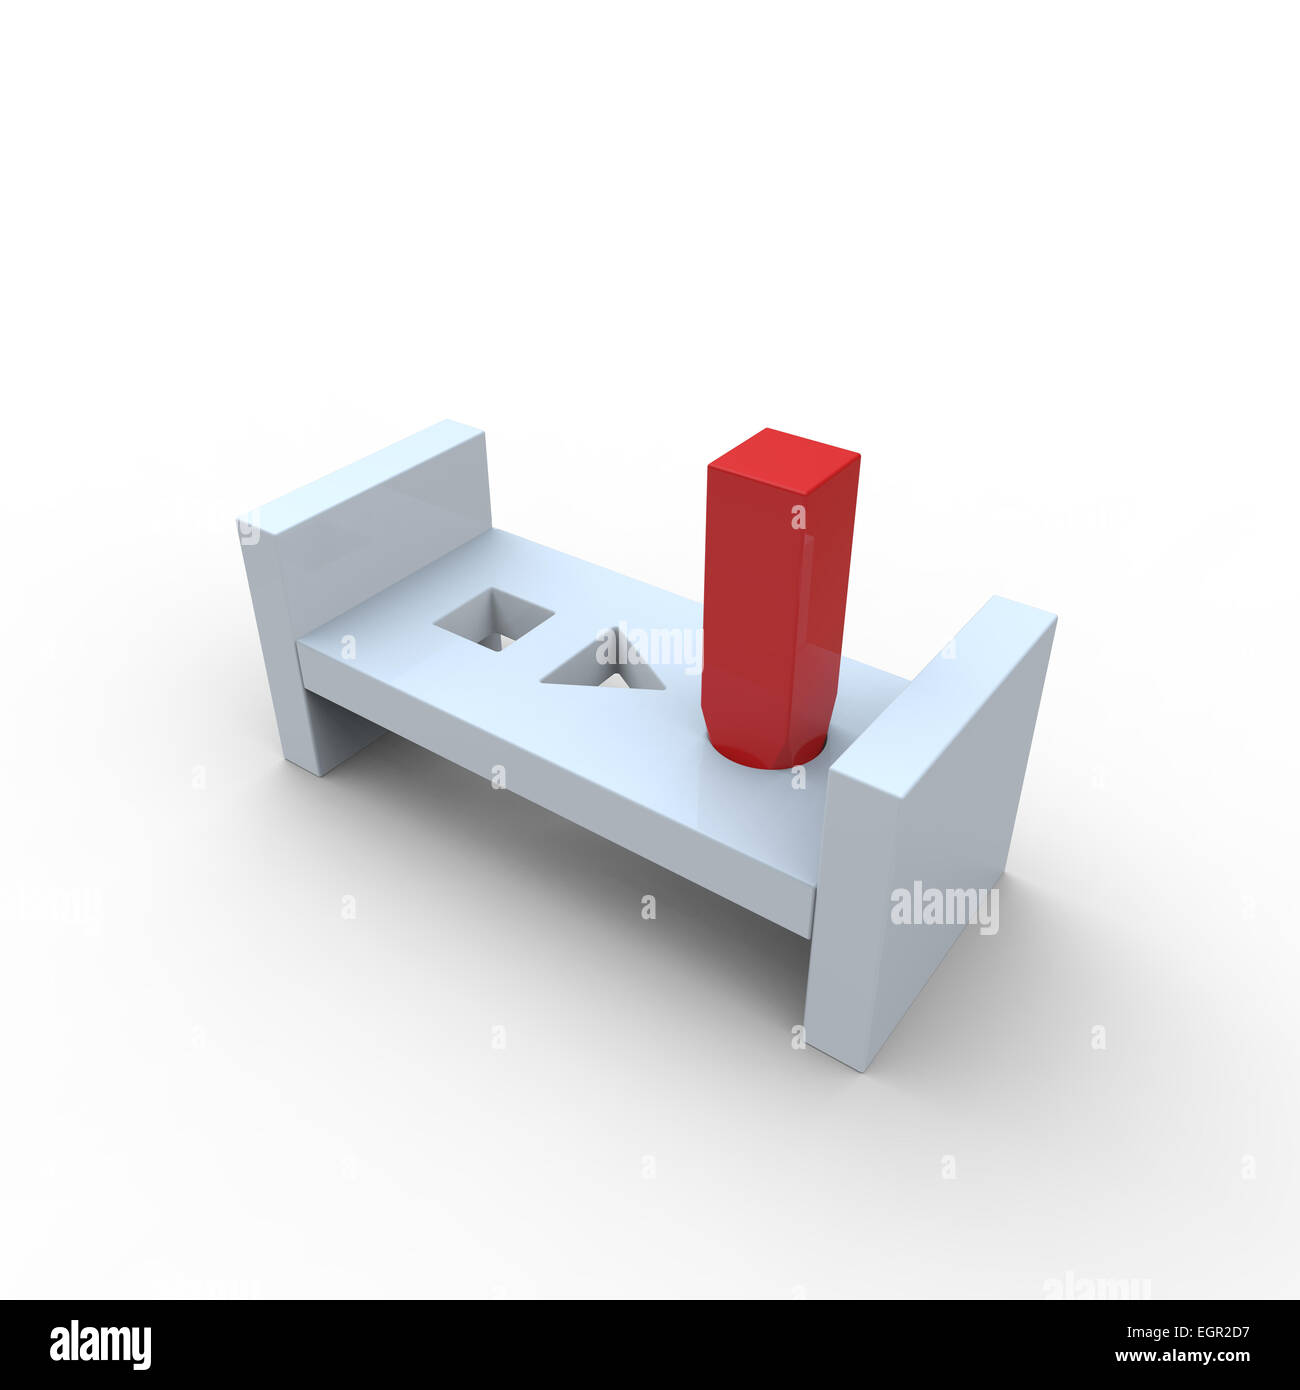 Square Peg And Round Hole Stock Photos  Square Peg And